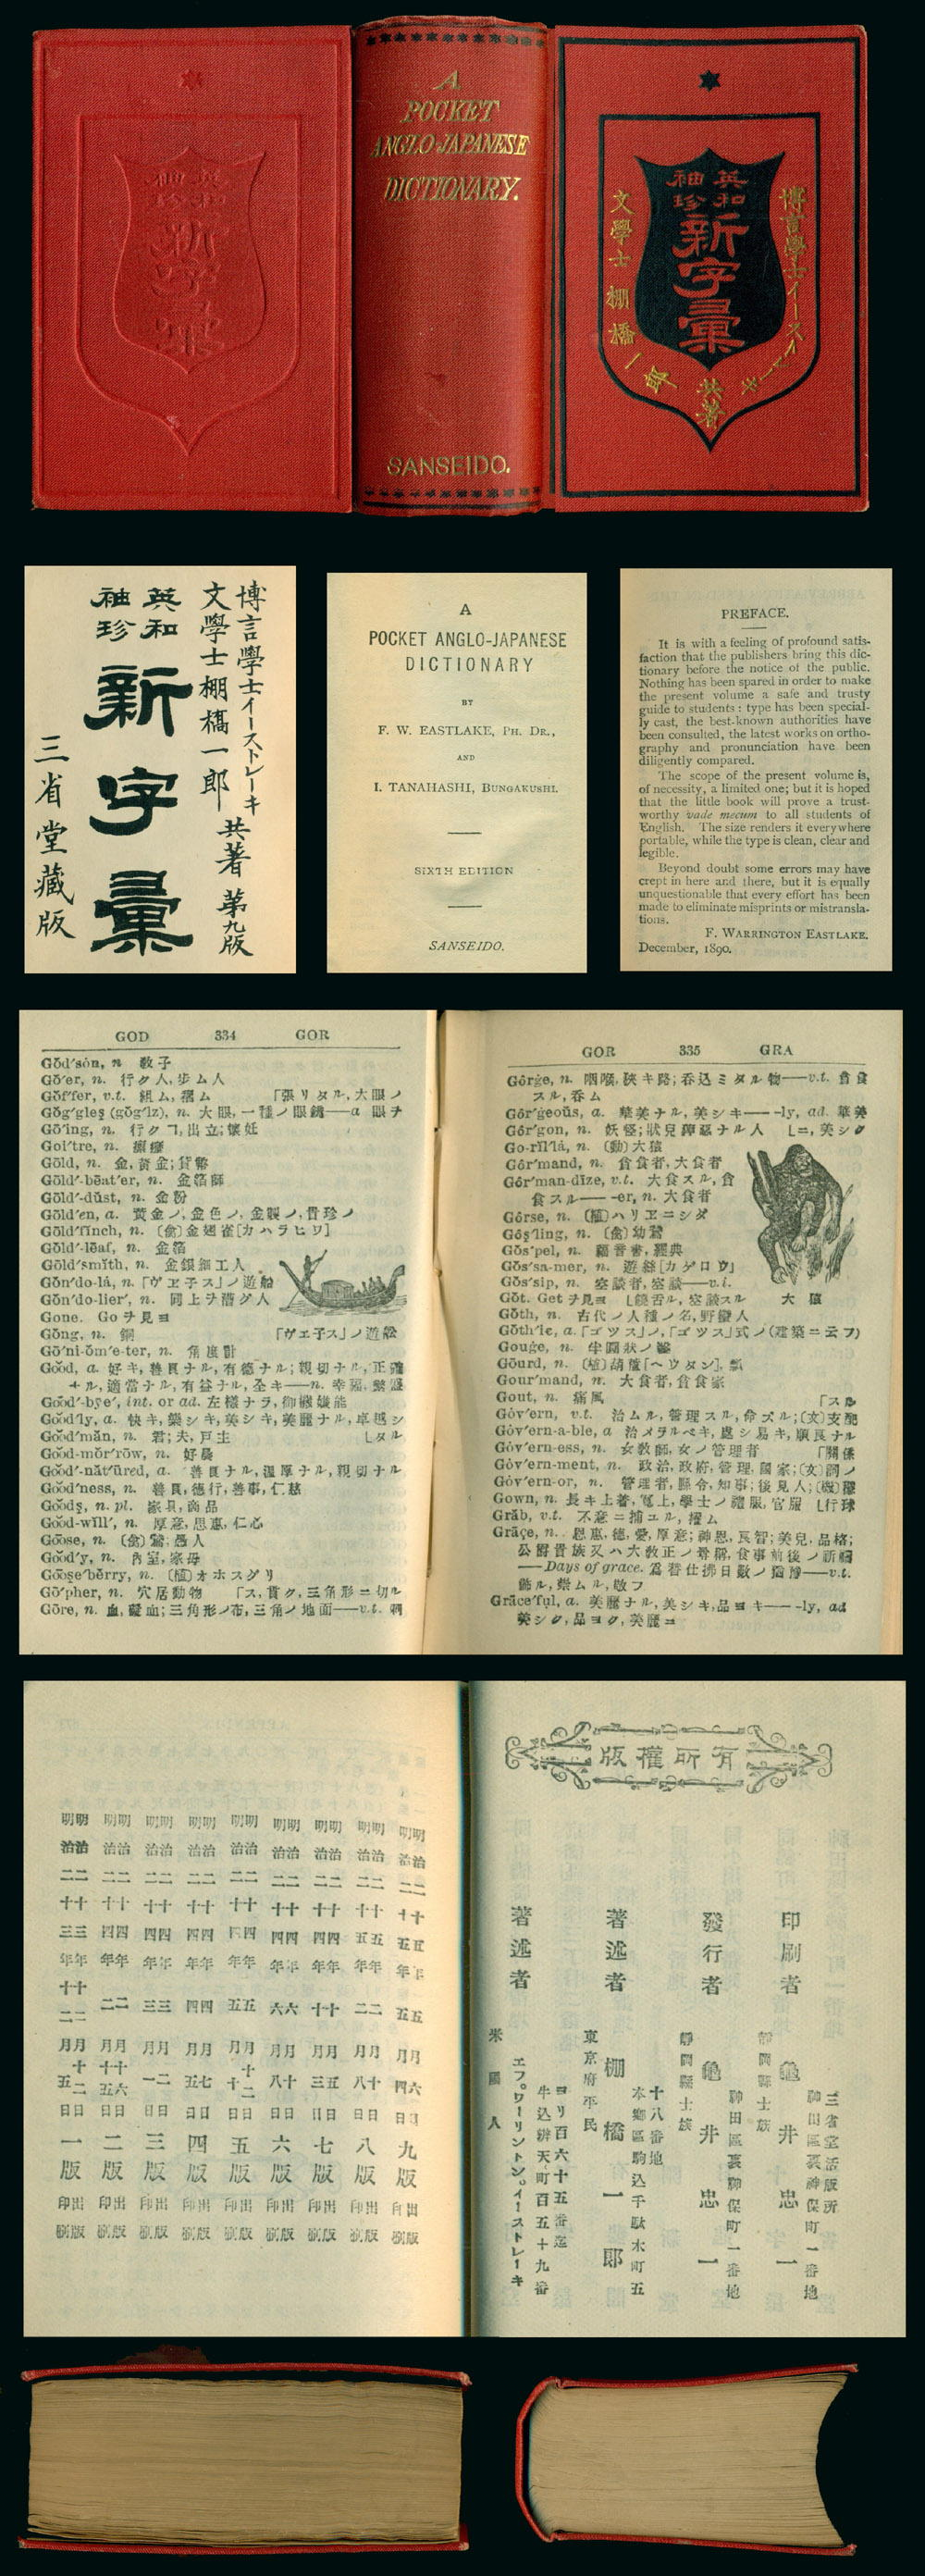 Ten Weeks in Japan (Ganesha - Japan in English: Key Nineteenth-Century Sources on Japan) George Smith